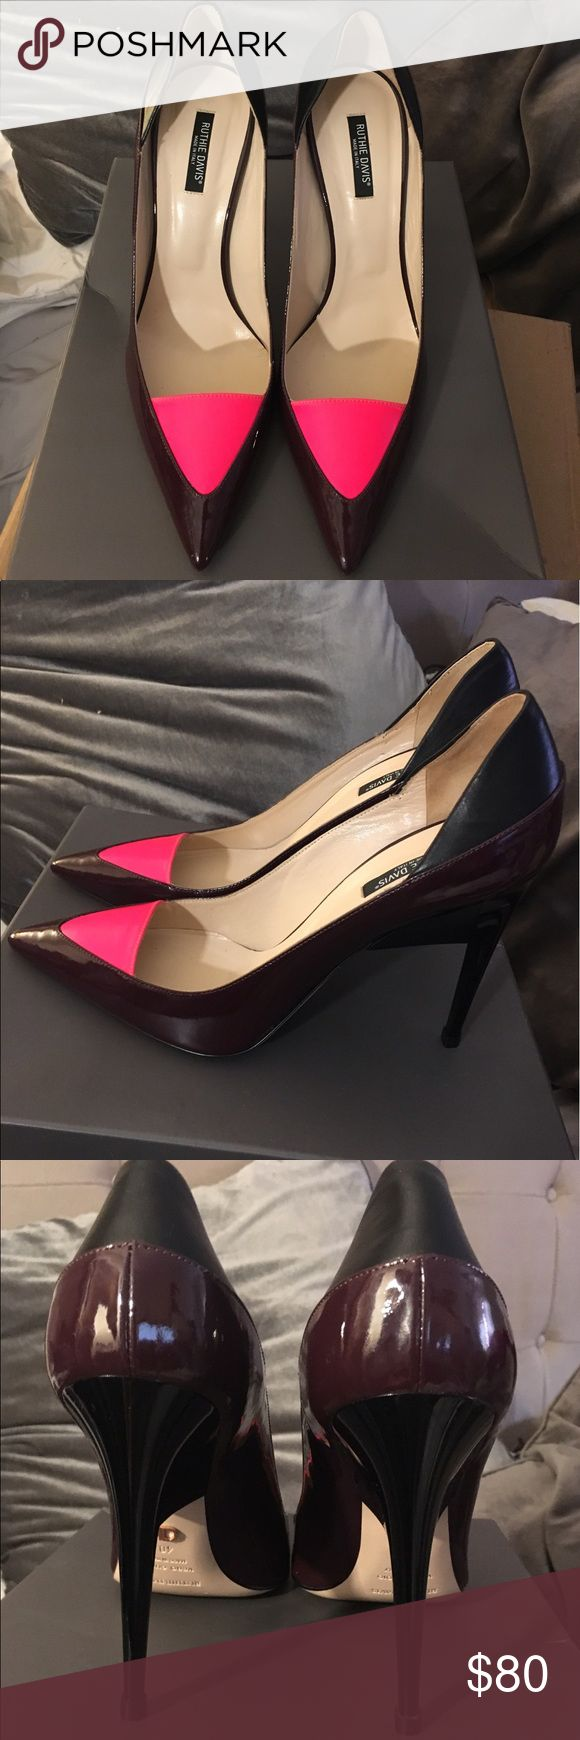 Ruthie Davis  leather pointed-toe pumps Burgundy multicolor leather Ruthie Davis pointed-toe pumps, resin heels. Gently used. Very small tear on right shoe (shown in image). Ruthie Davis Shoes Heels